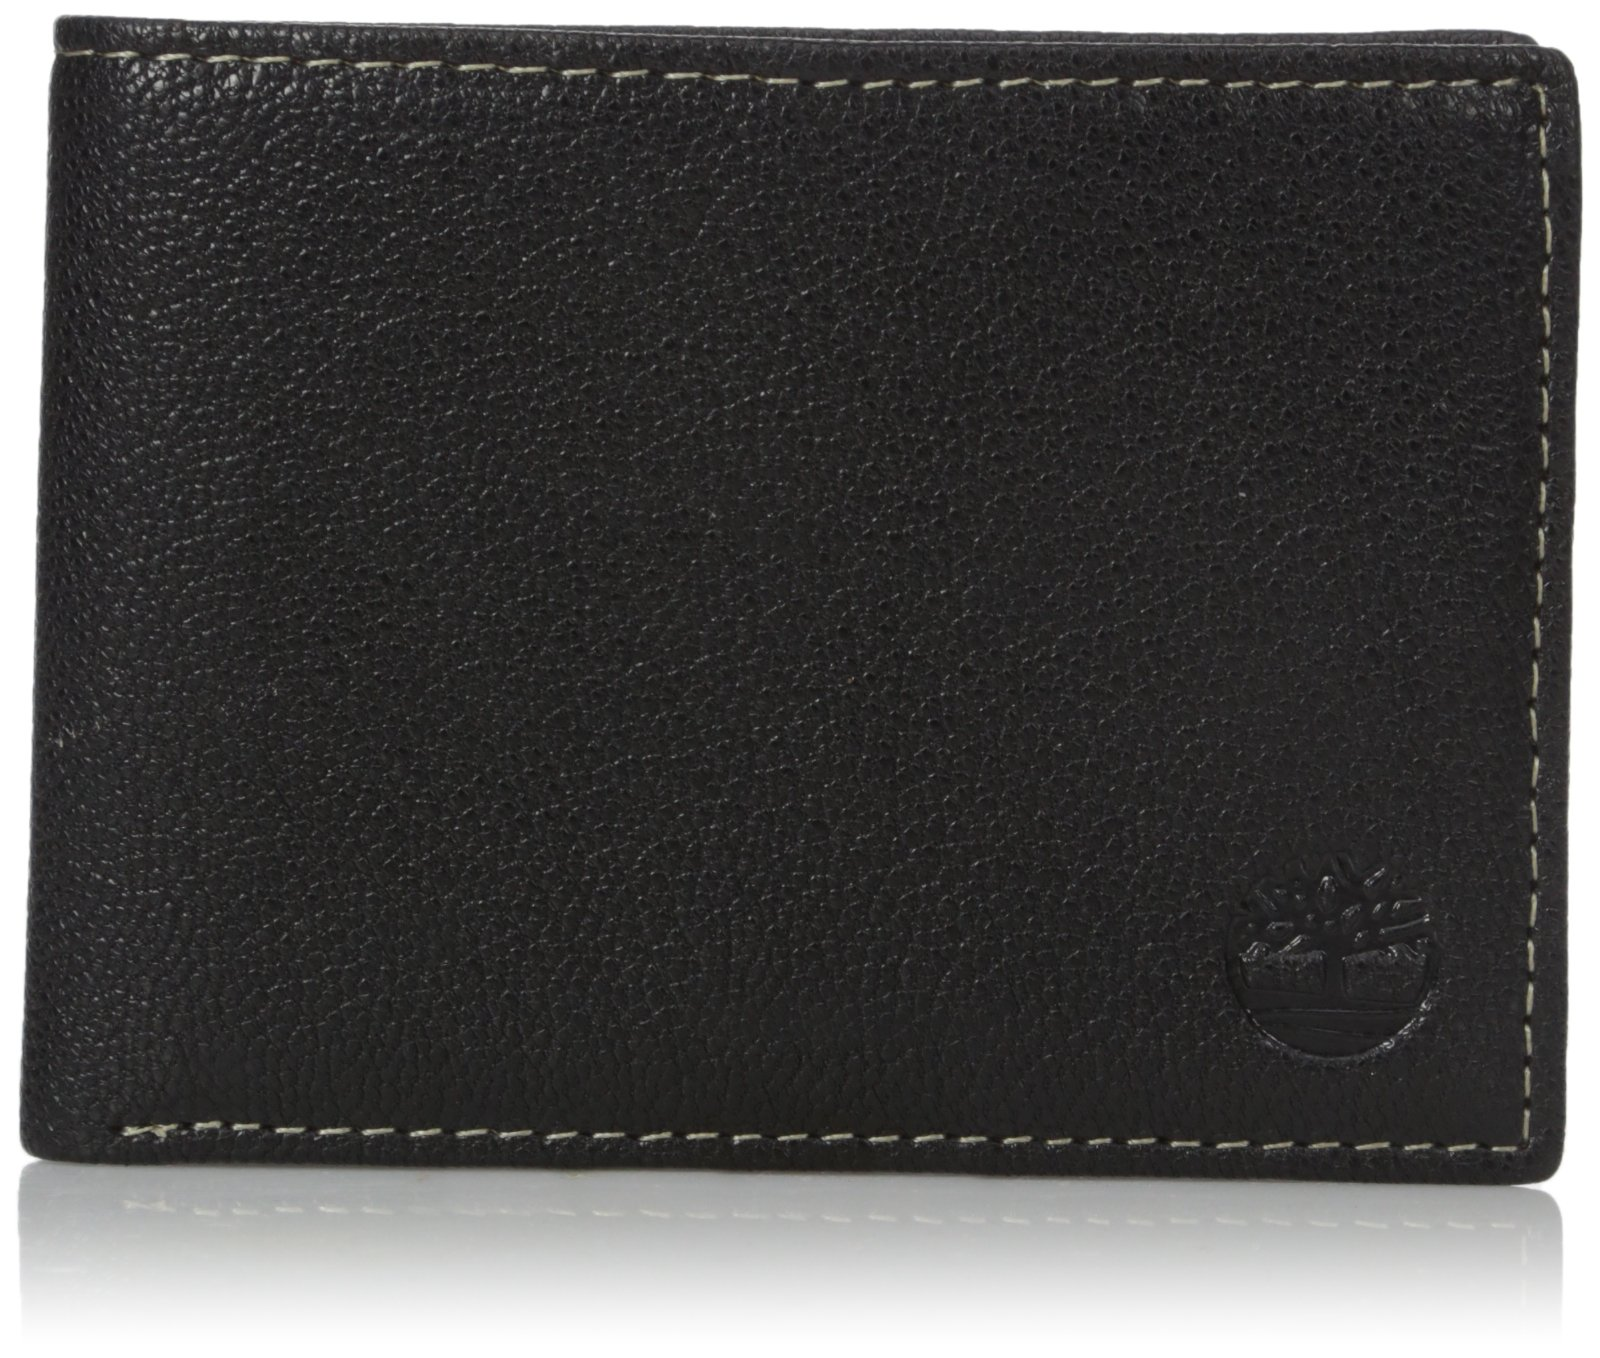 Timberland Men's Genuine Leather RFID Blocking Passcase Security Wallet, black, One Size by Timberland